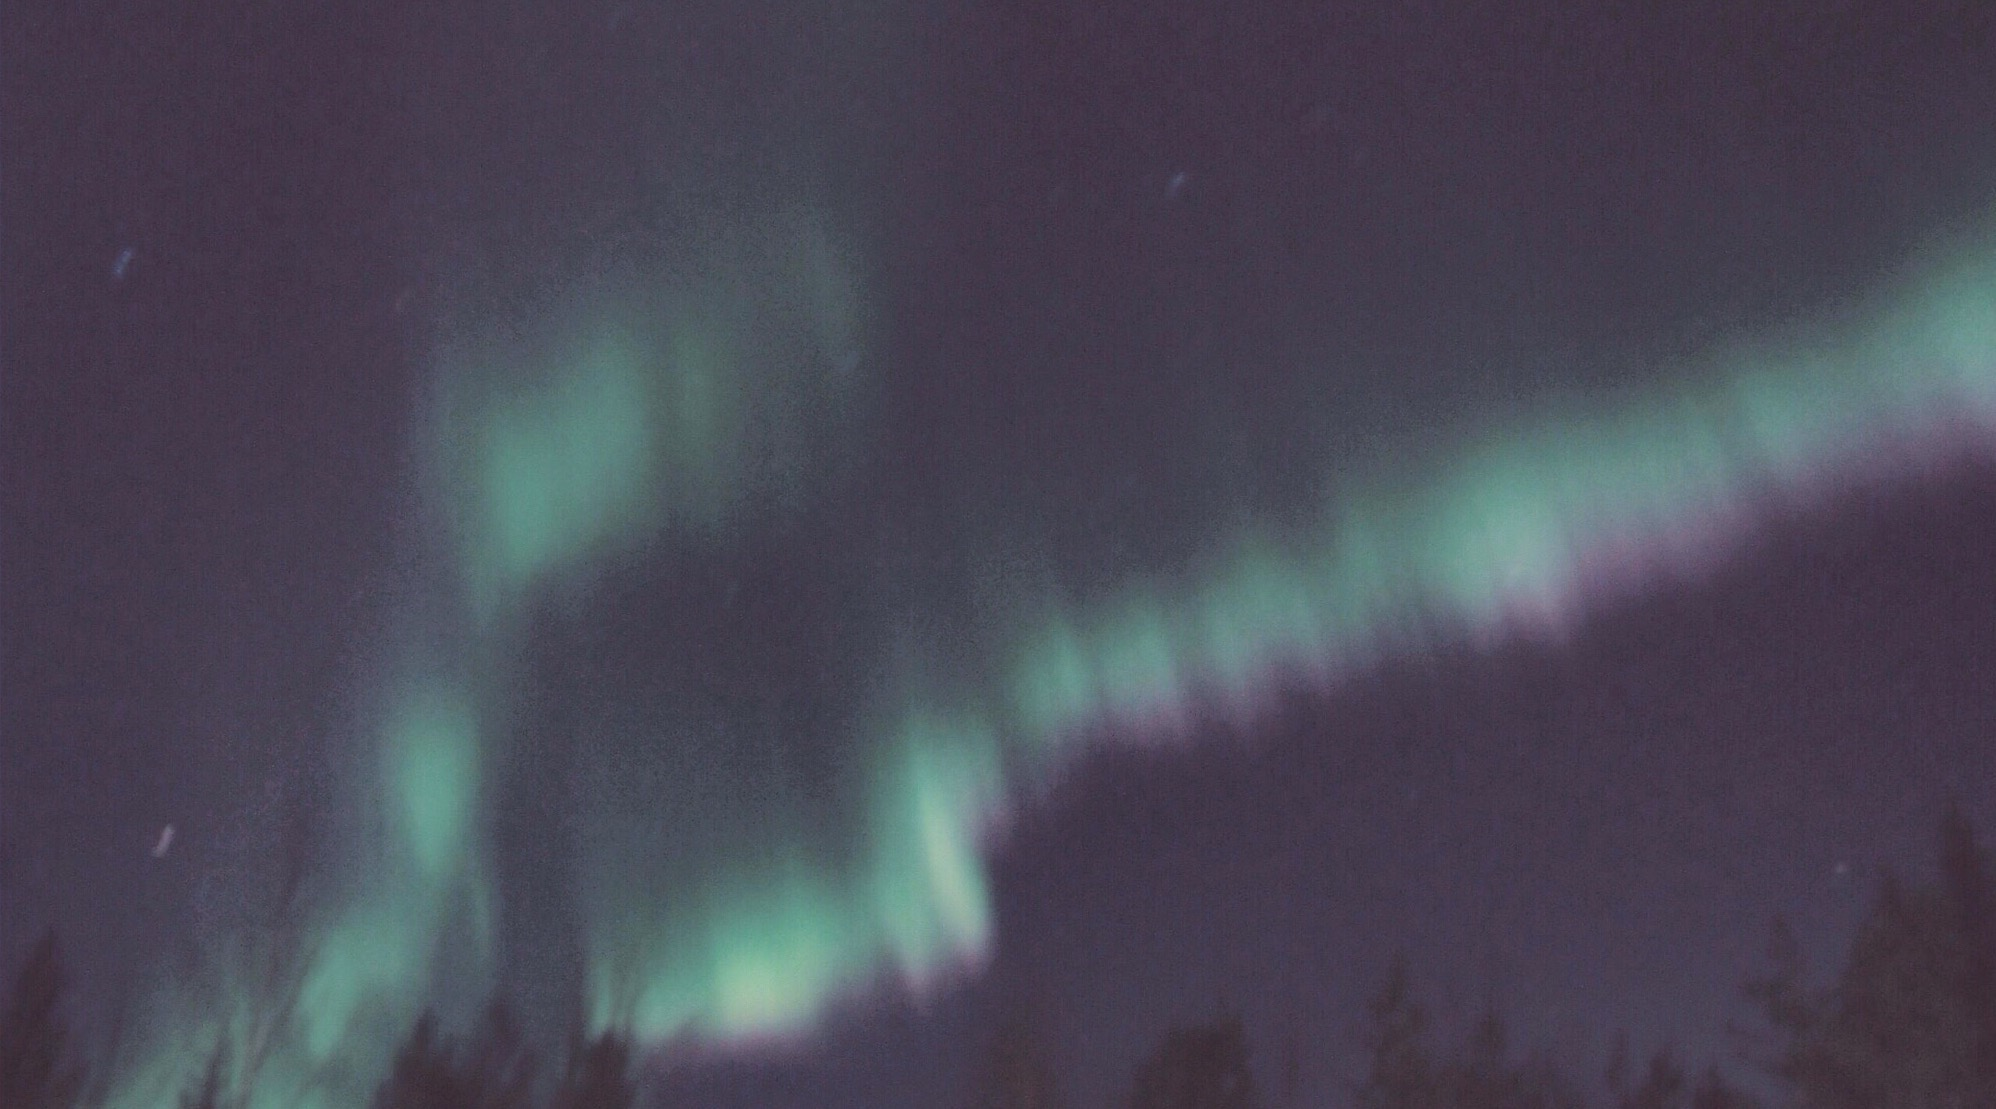 NORTHERN LIGHTS & THOUGHTS